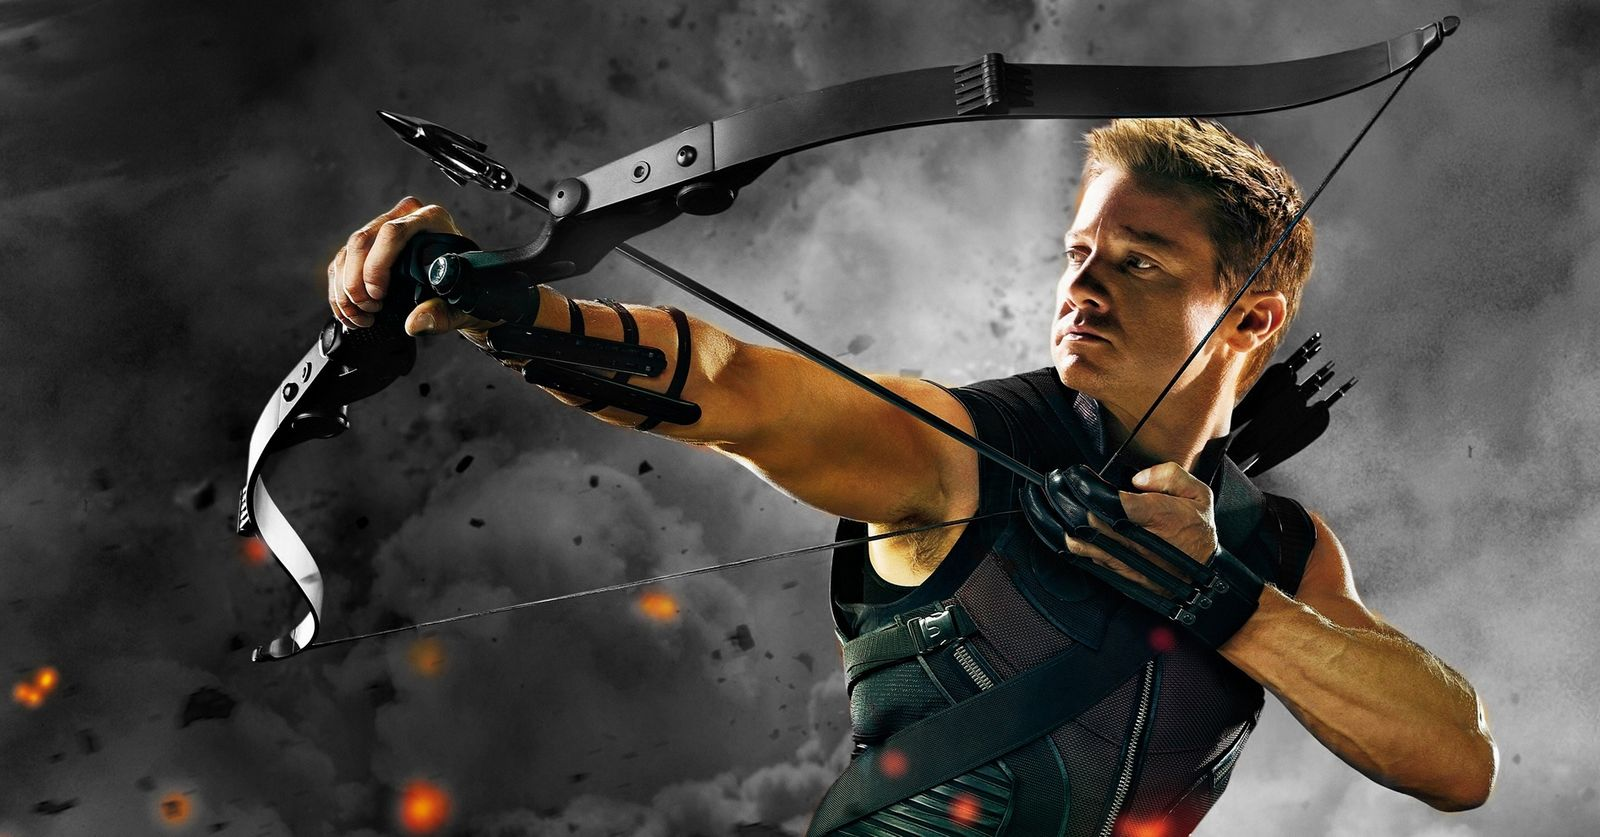 hawkeye the avengers movie wallpaper